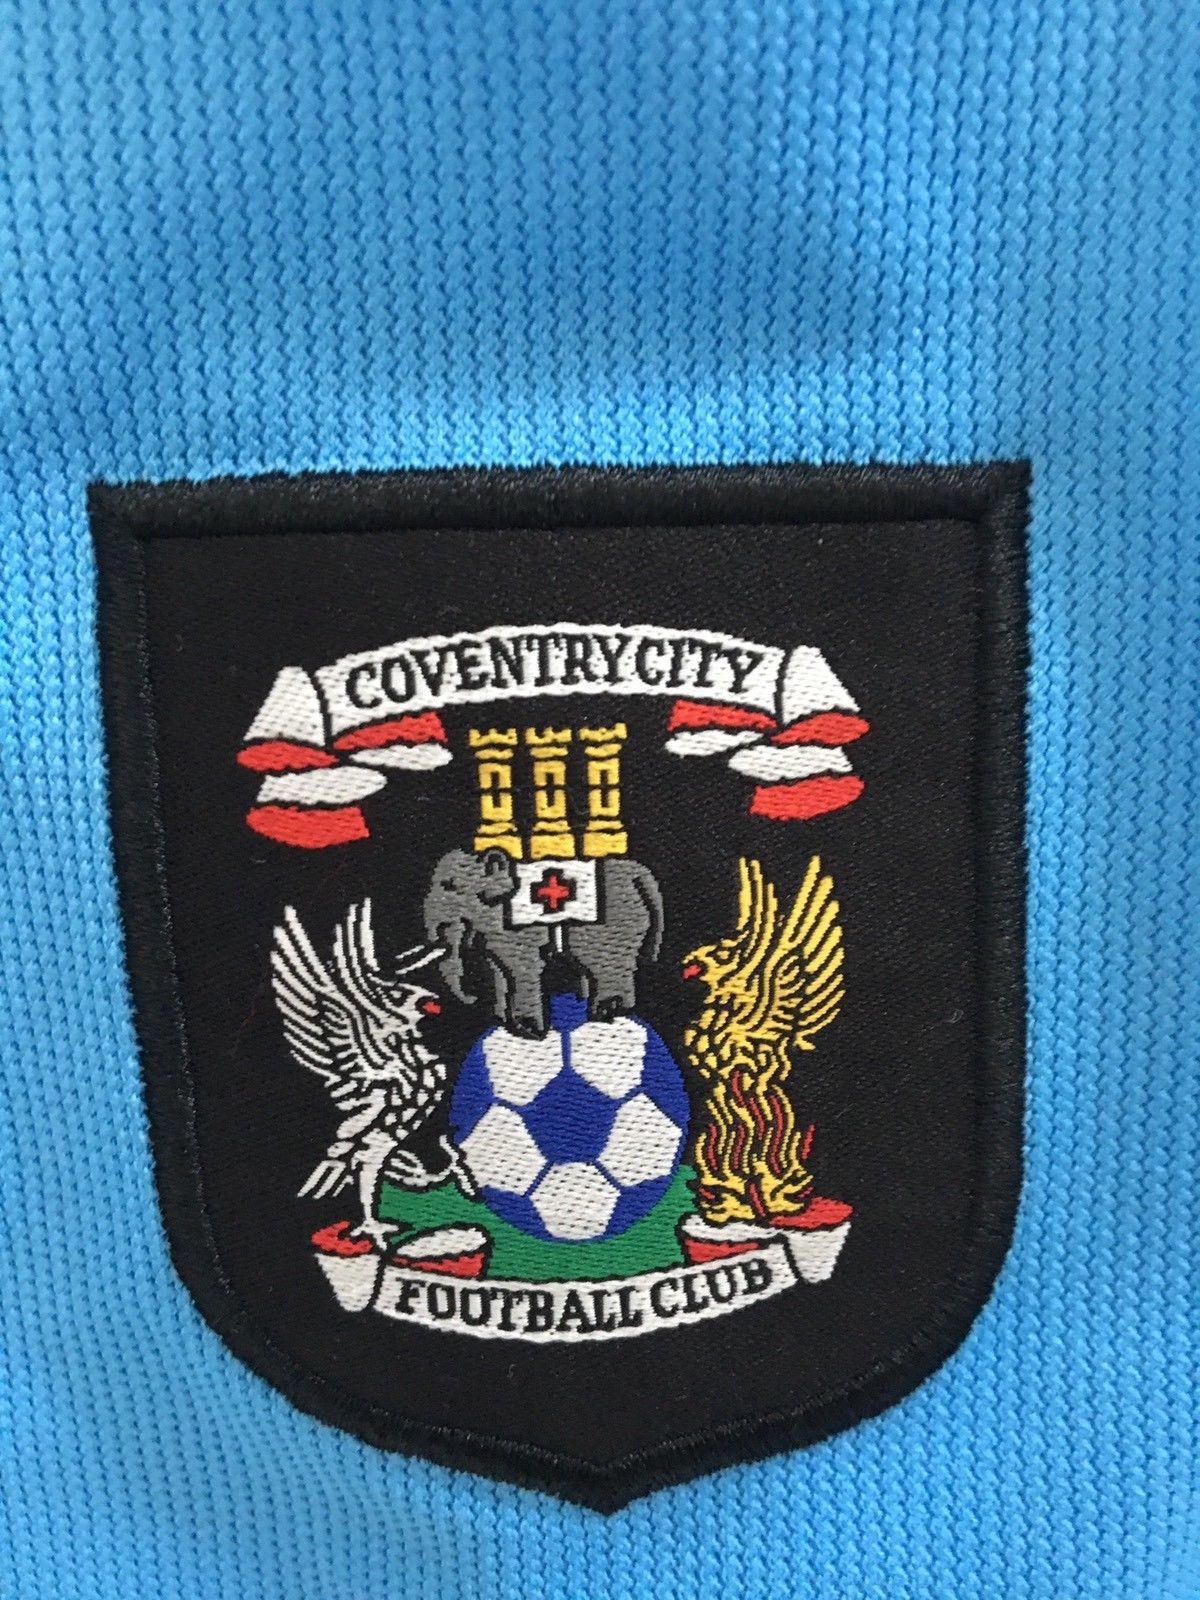 2001/02 Coventry Home Shirt (XL)